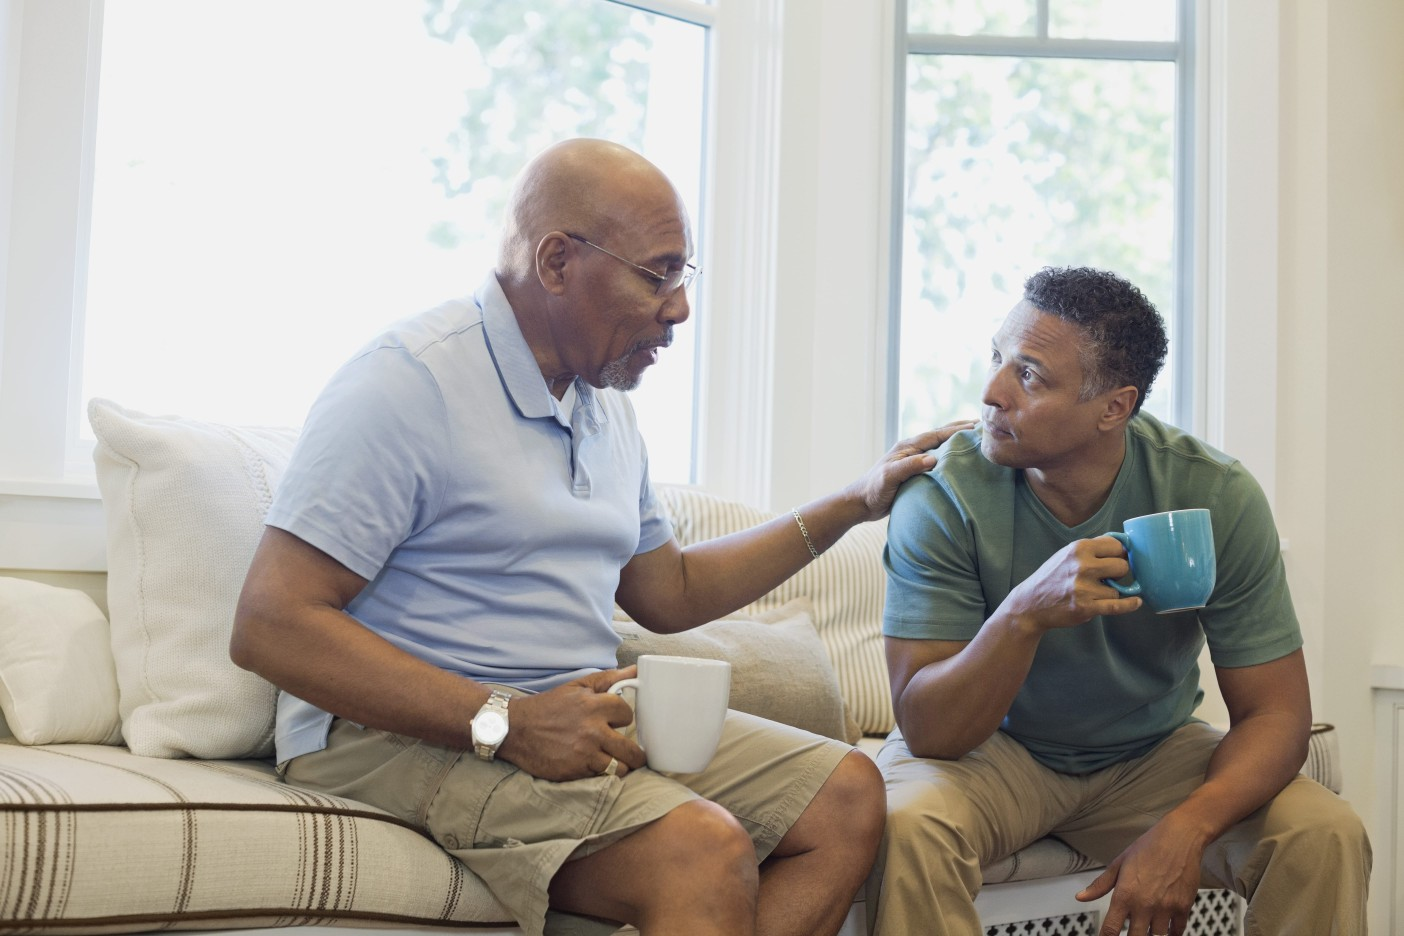 Two men sit in a well-lit living room and discuss bone marrow transplant support groups while drinking coffee